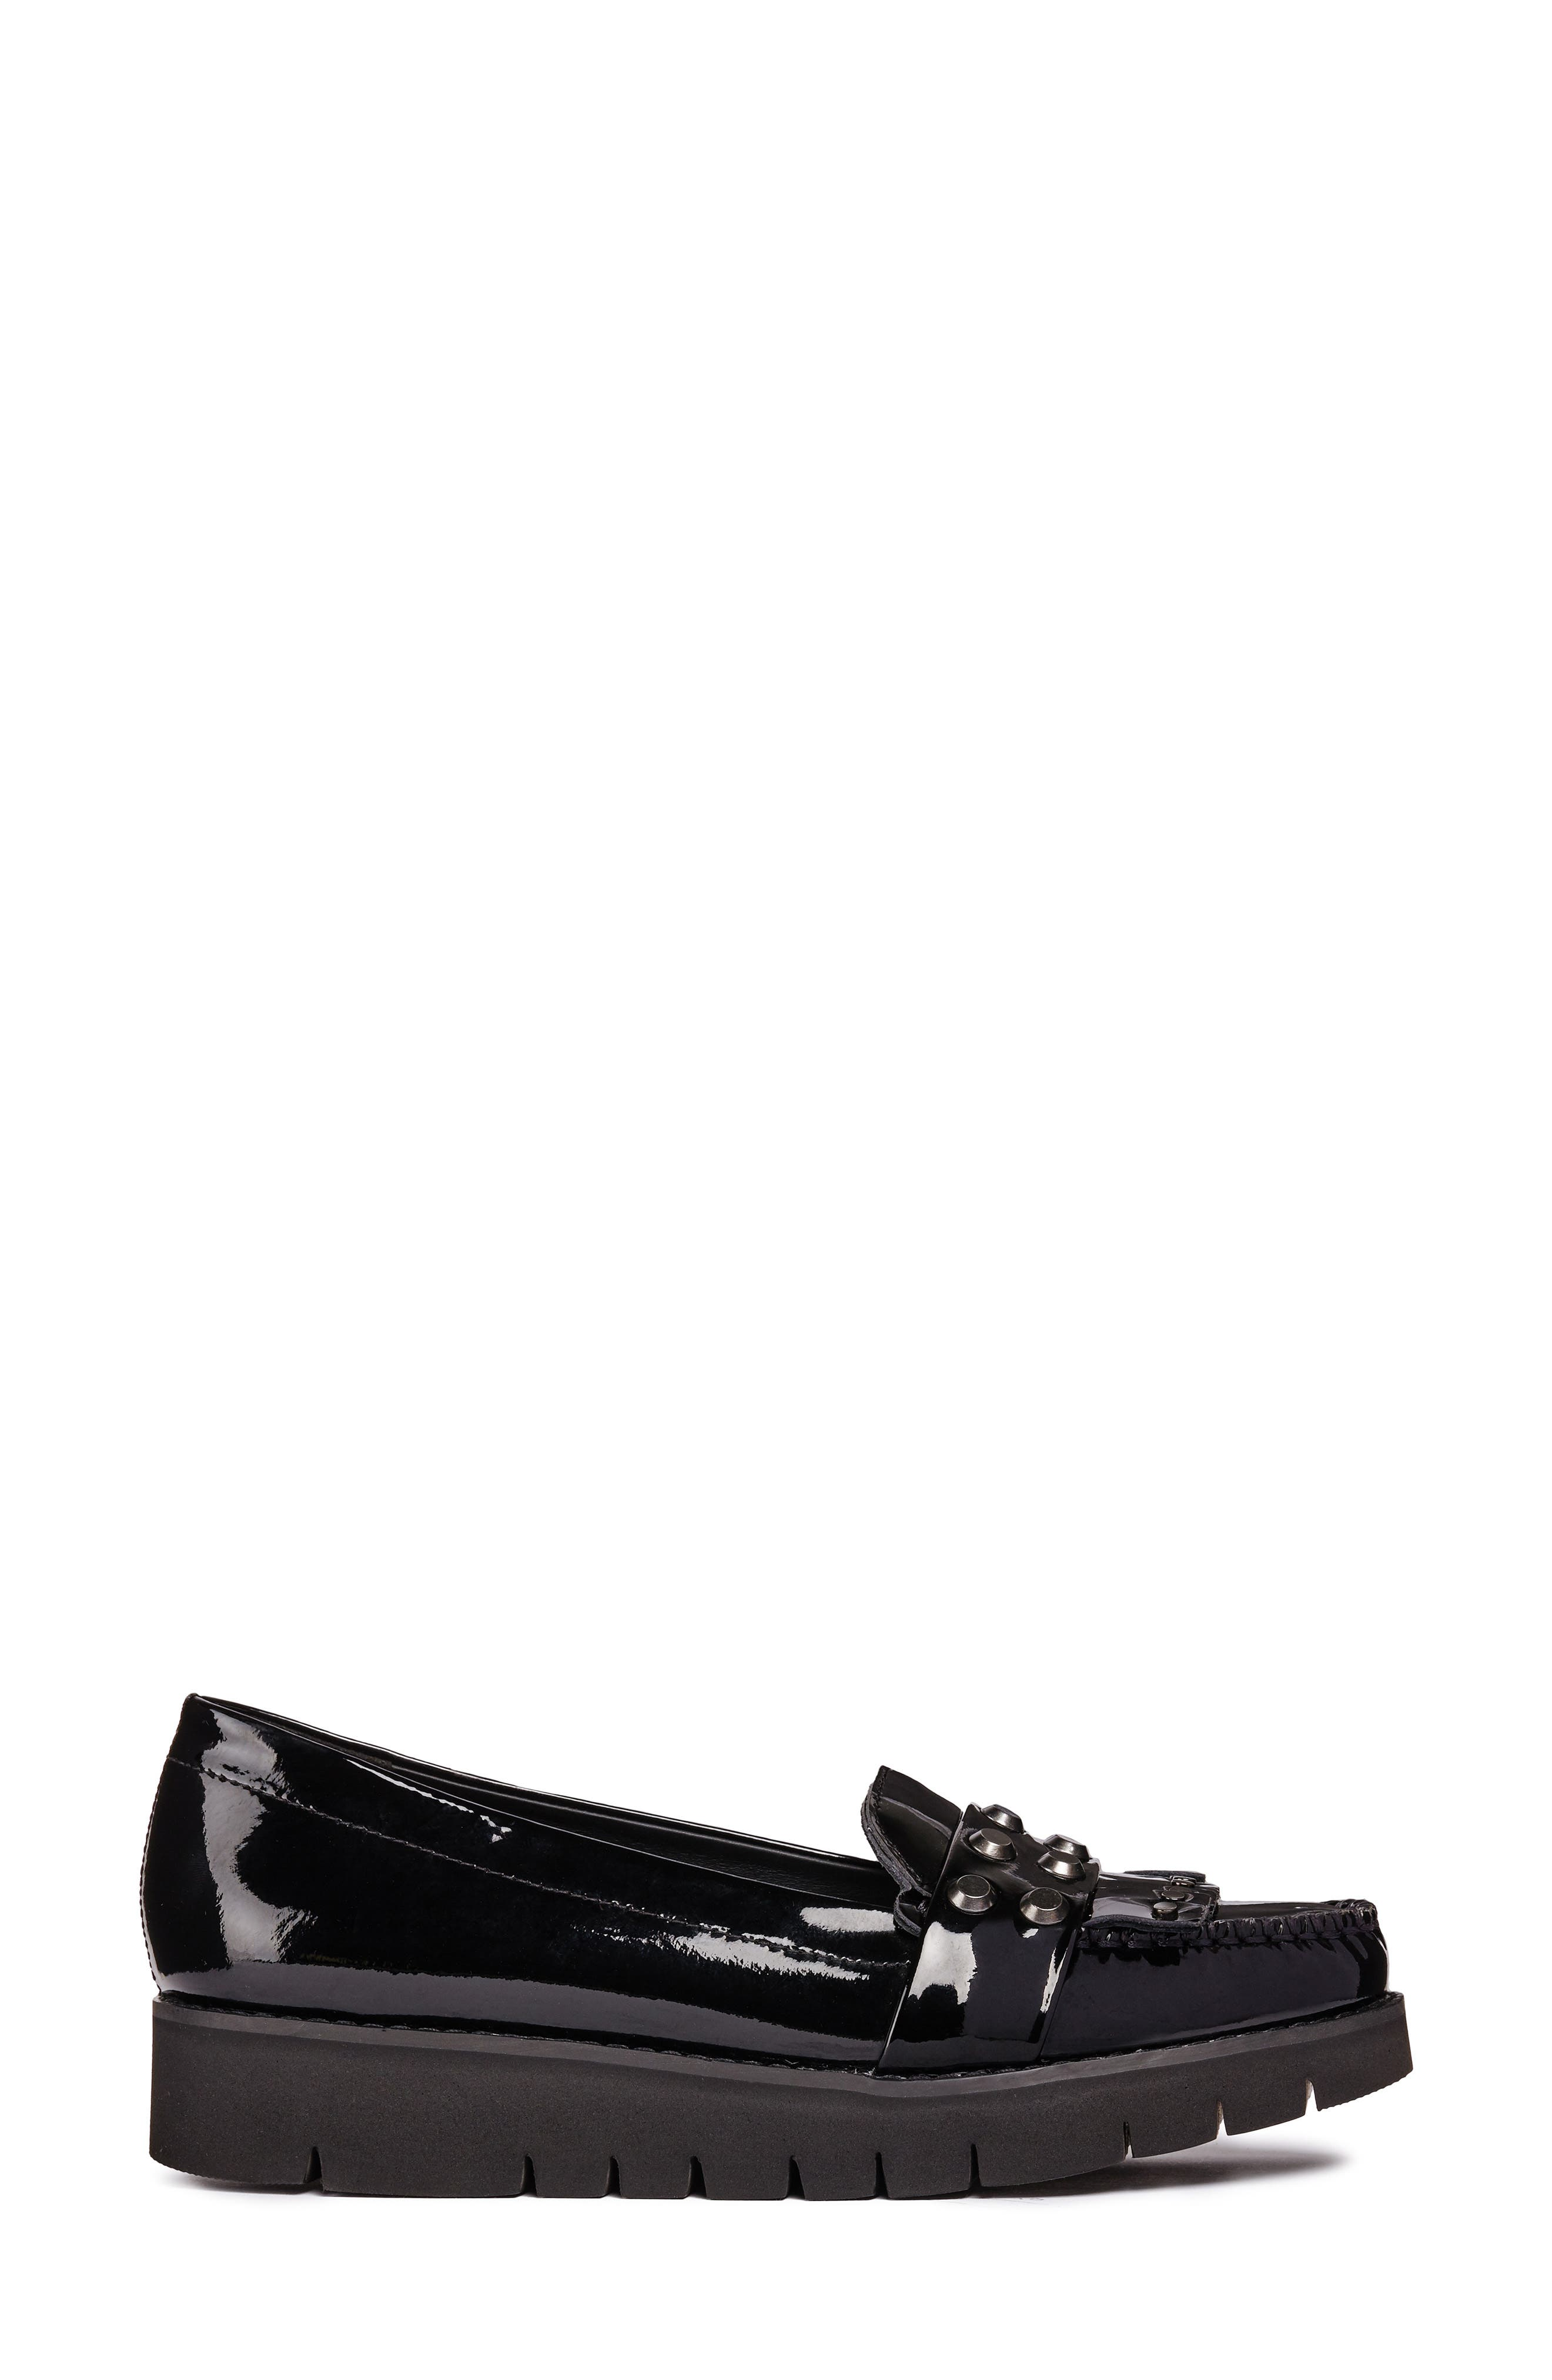 Blenda Studded Kiltie Loafer,                             Alternate thumbnail 3, color,                             BLACK LEATHER